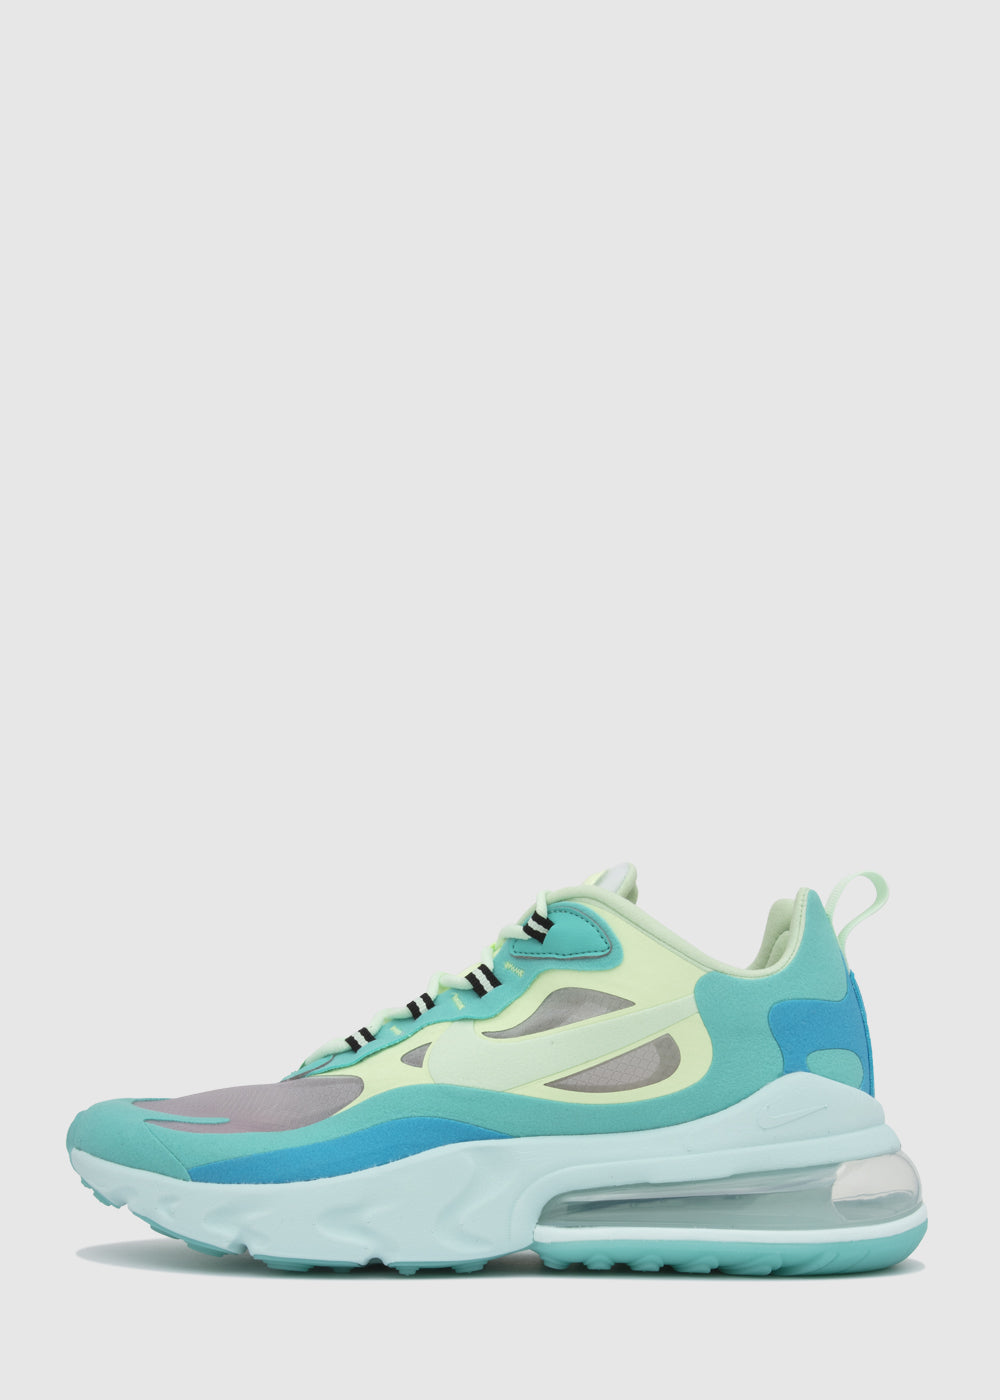 nike-air-max-20-react-green-1